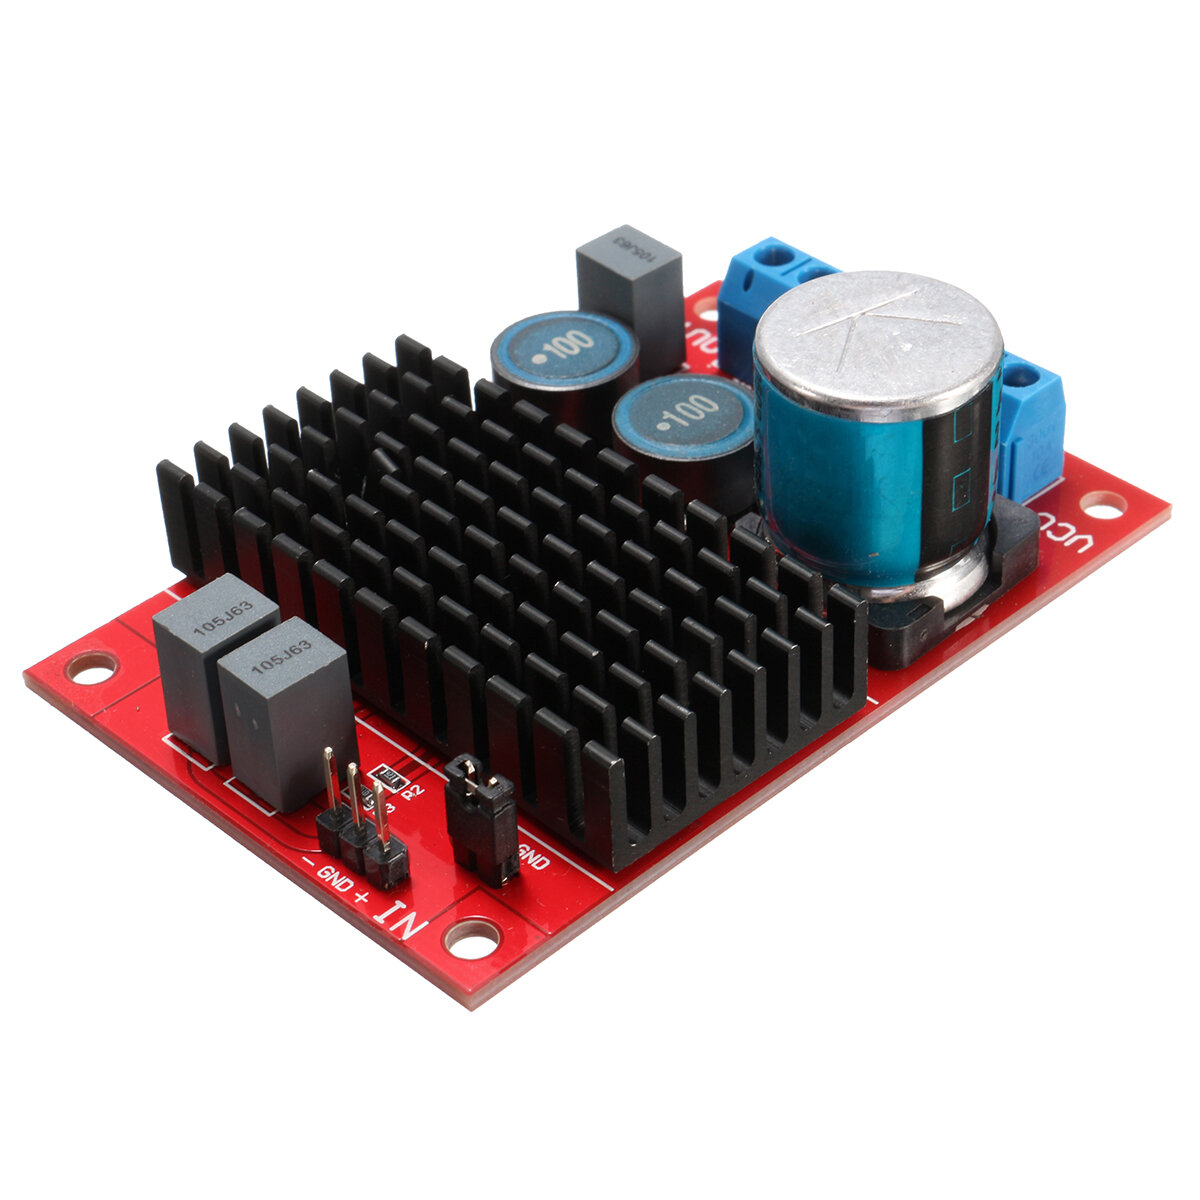 Dc 12v 24v 100w Btl Out Tpa3116 Mono Channel Digital Power Audio Semiconductors And Electronics In An Easy To Understand Amplifier Board